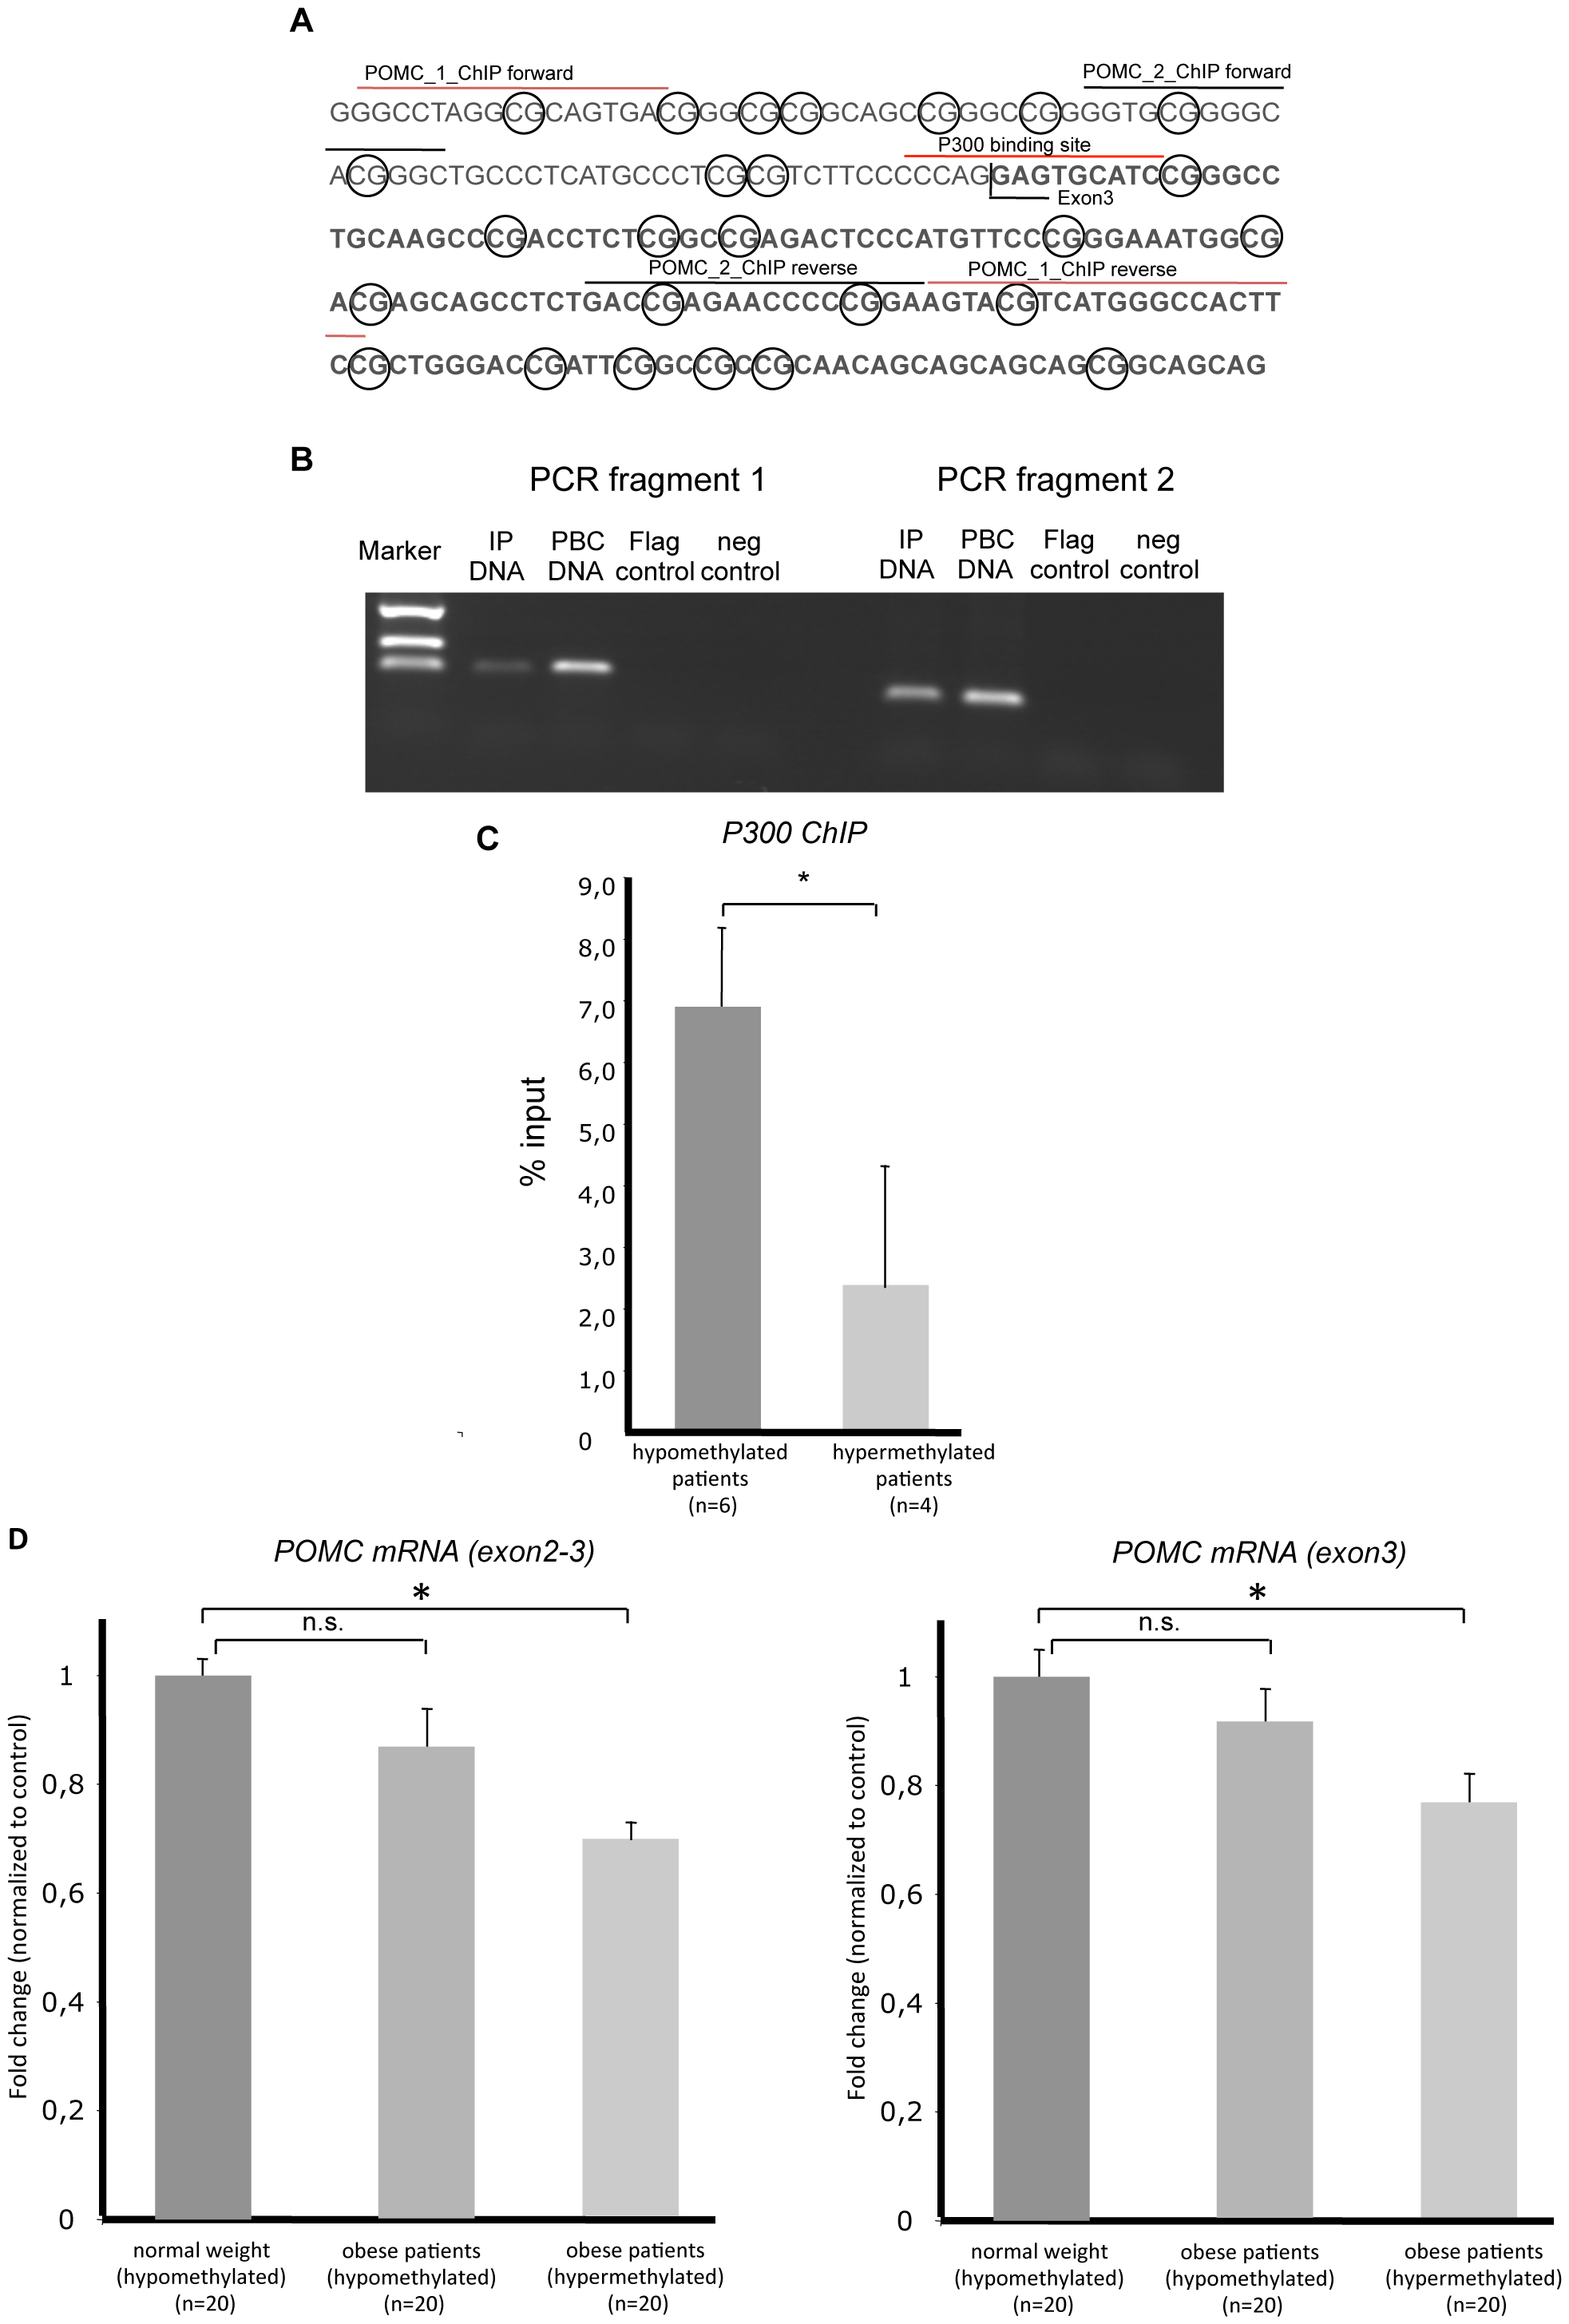 <i>POMC</i> intron2 exon3 genomic sequence, P300 ChIP assay, real-time PCR analysis, and real-time <i>POMC</i> PCR.